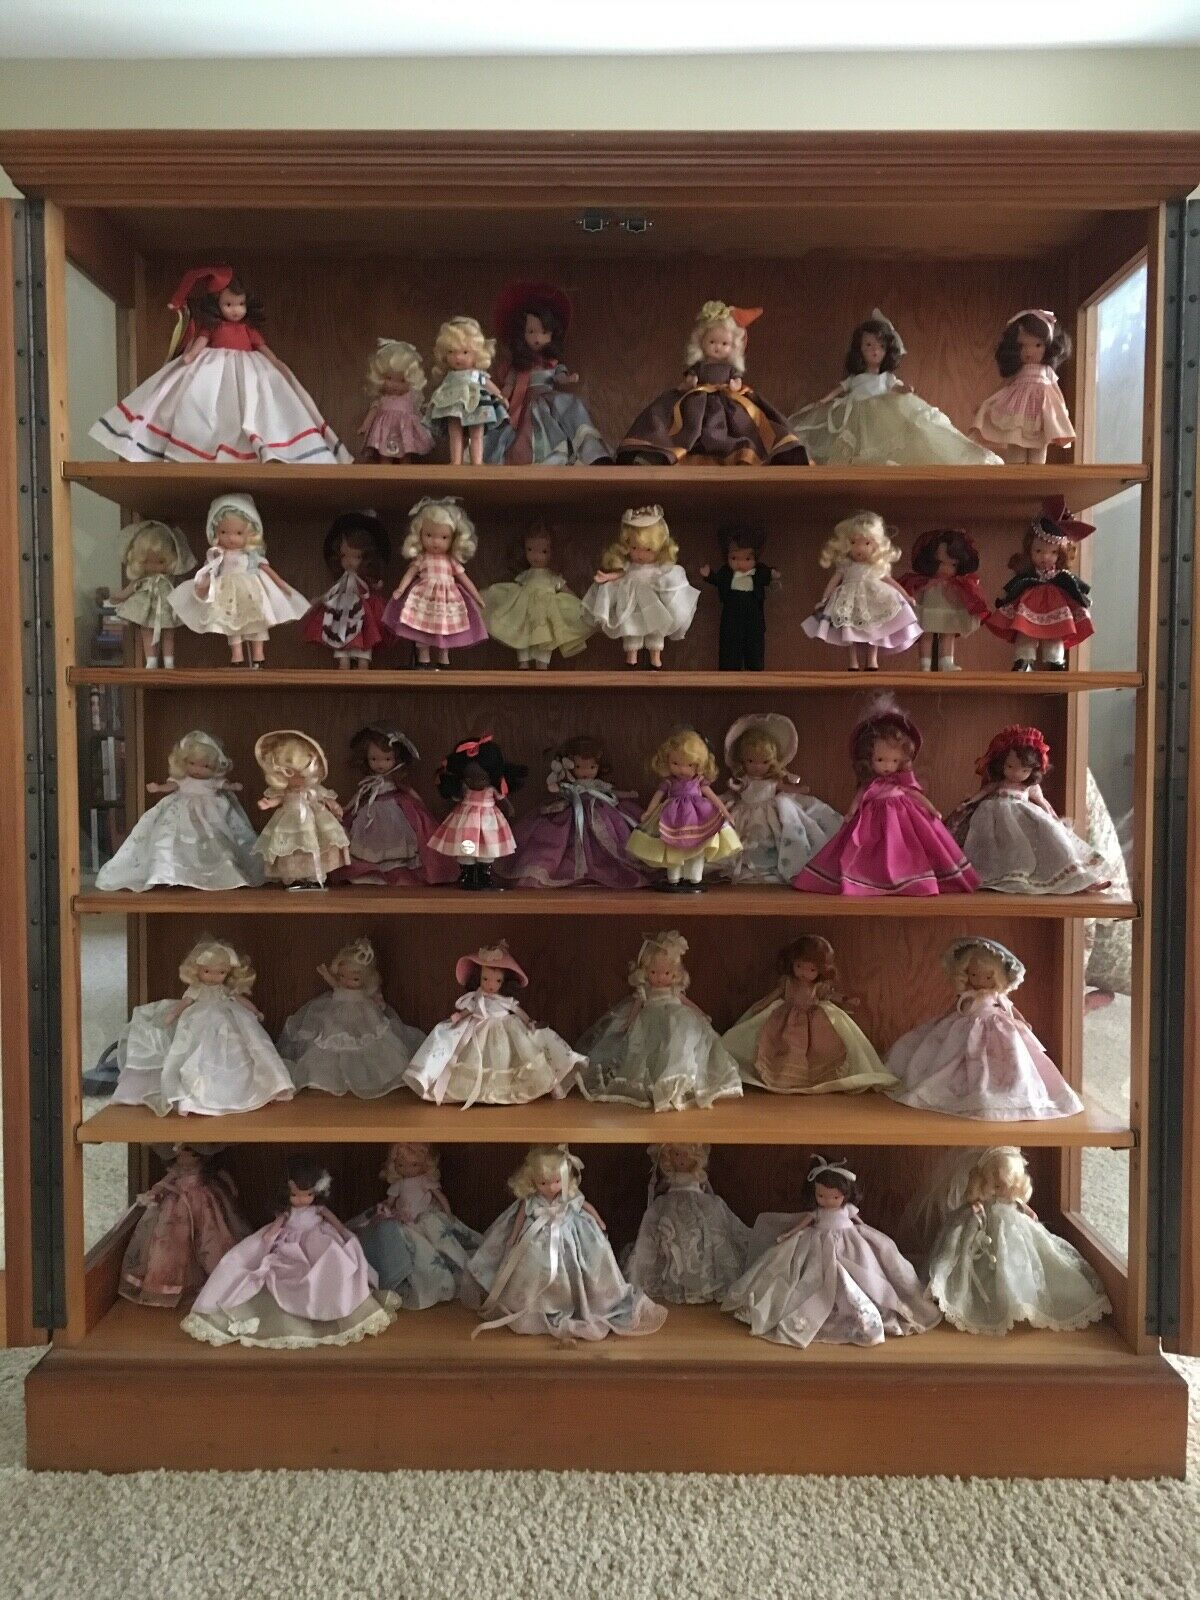 Vintage Nancy Ann Storybook Doll Collection - $500.00